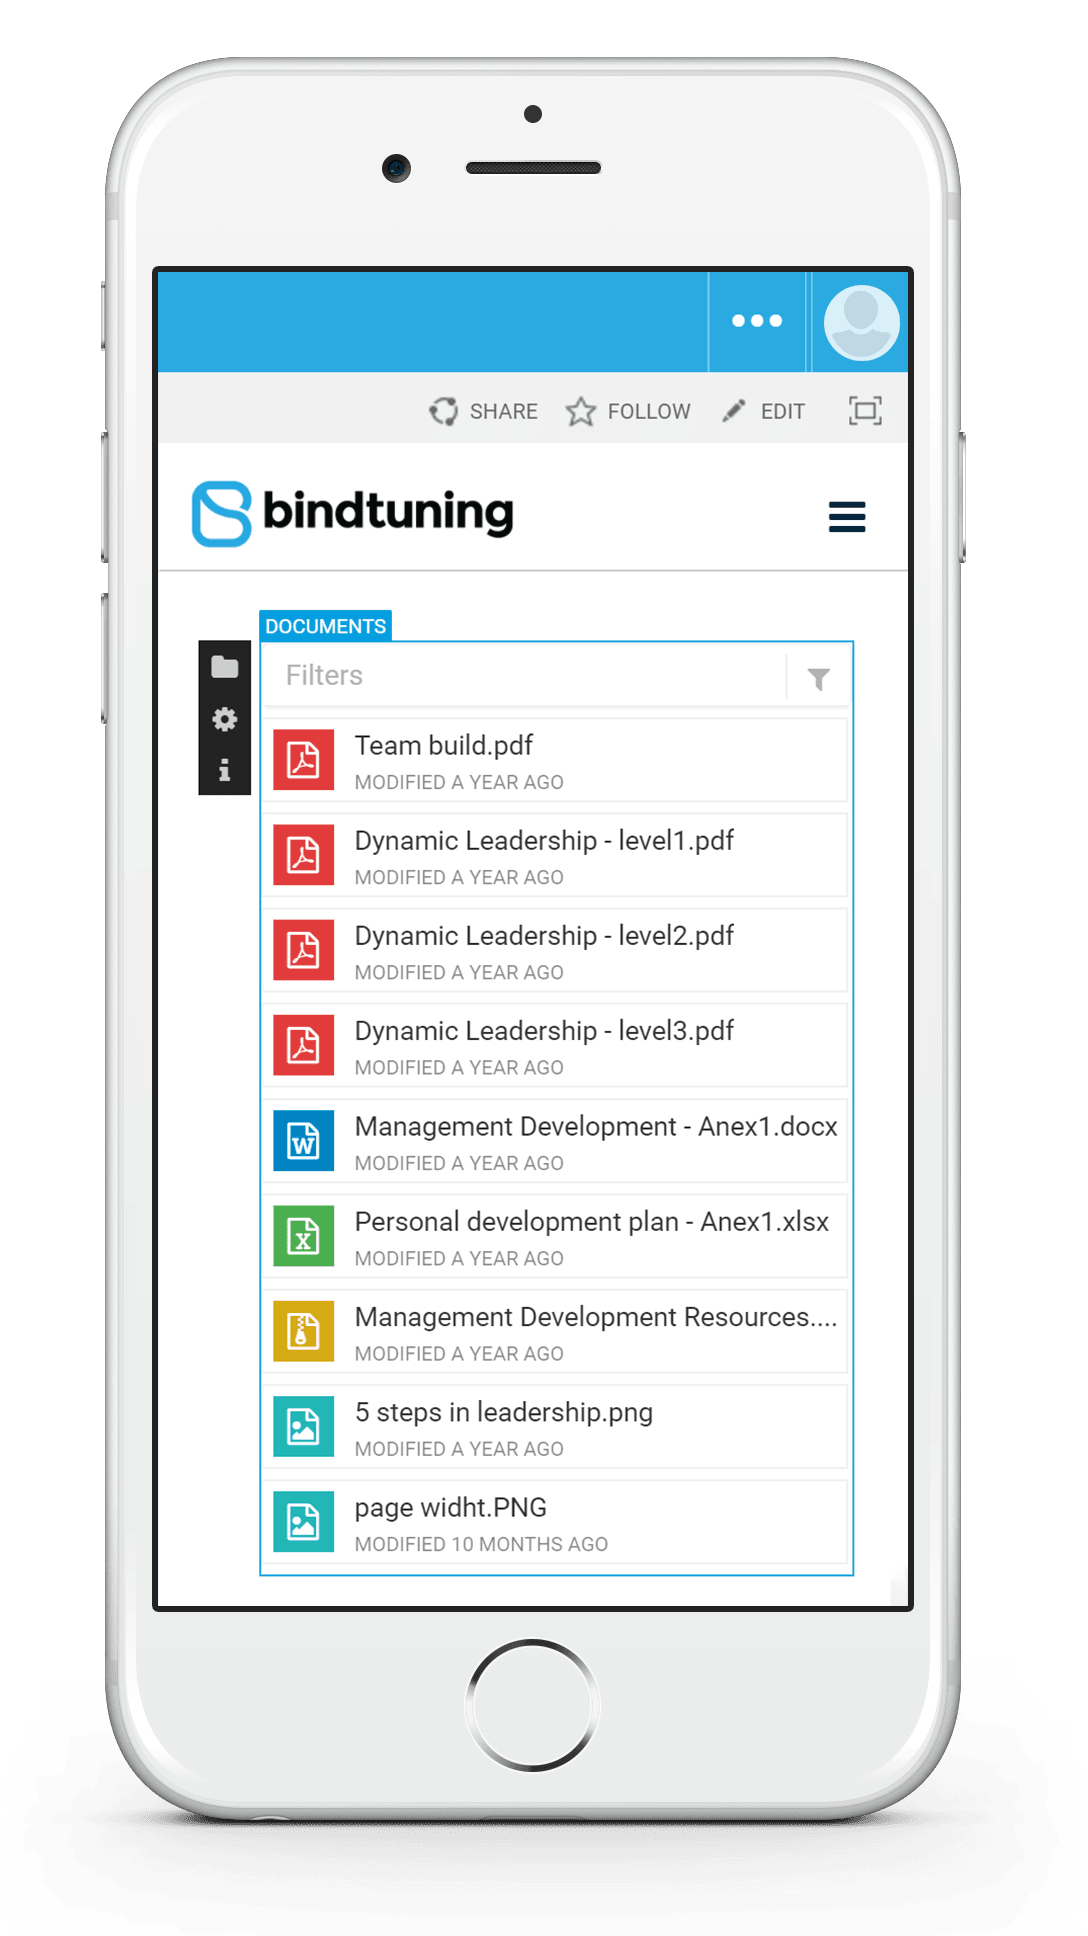 BindTuning Mobile Web Parts Panel using SharePoint